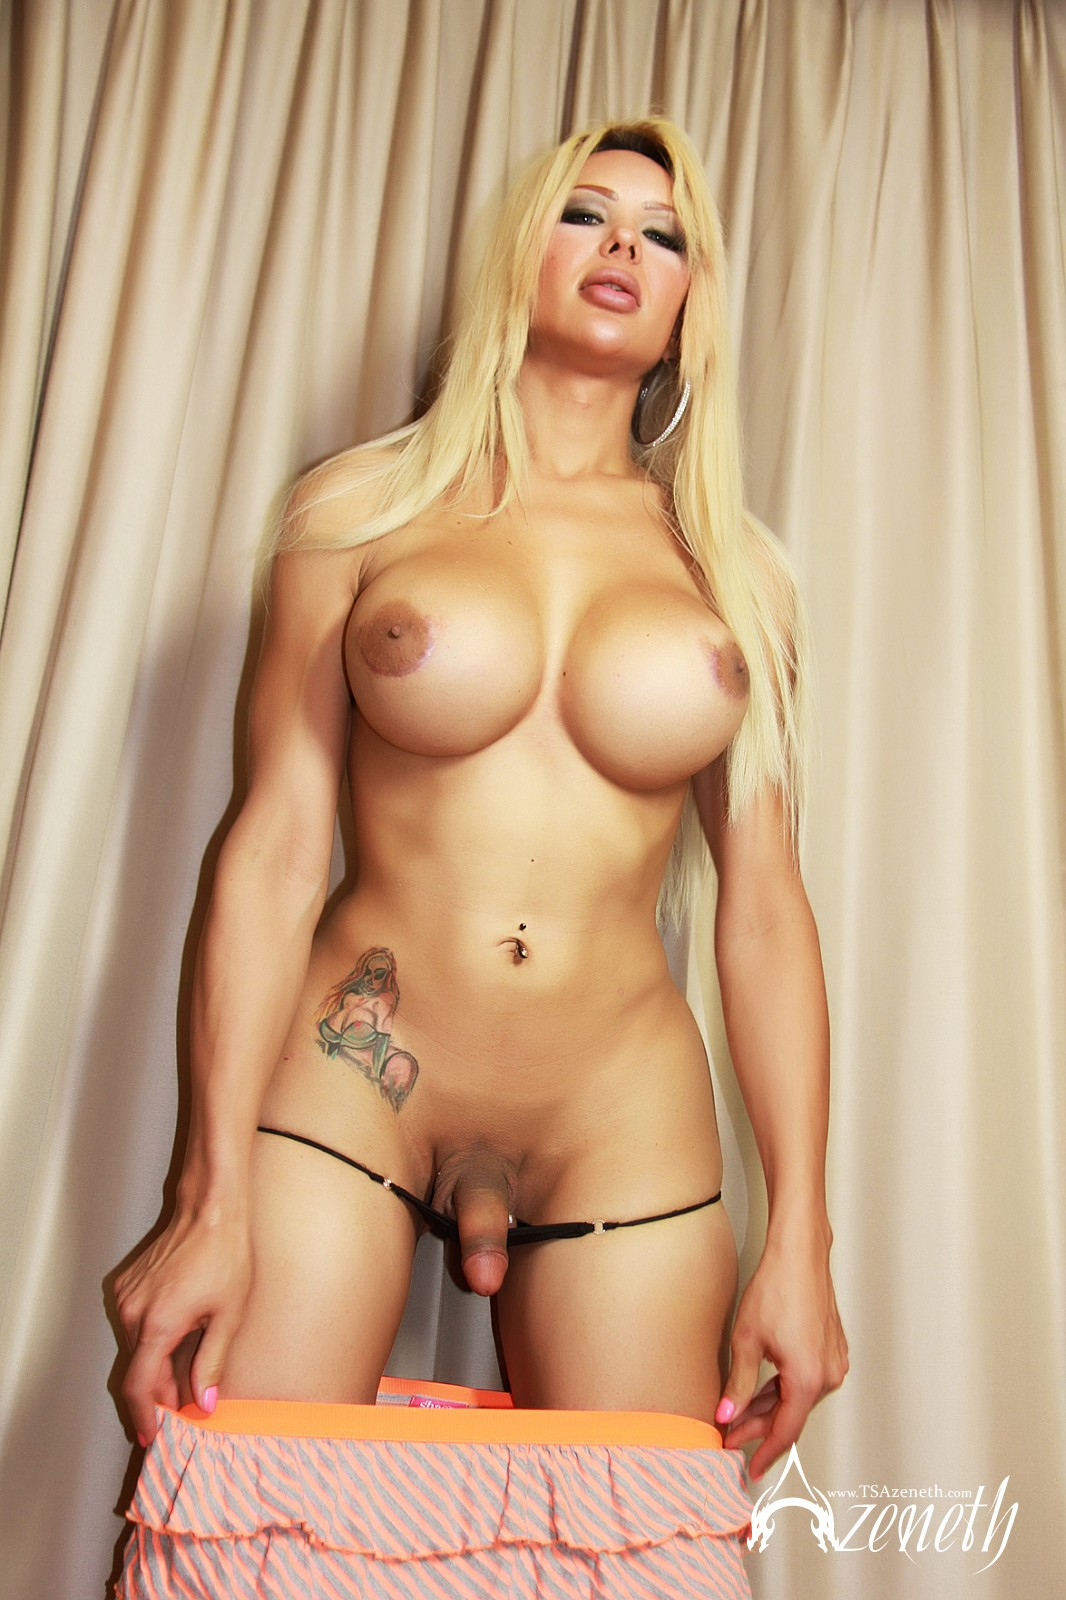 tranny blonde sex jpg 1200x900